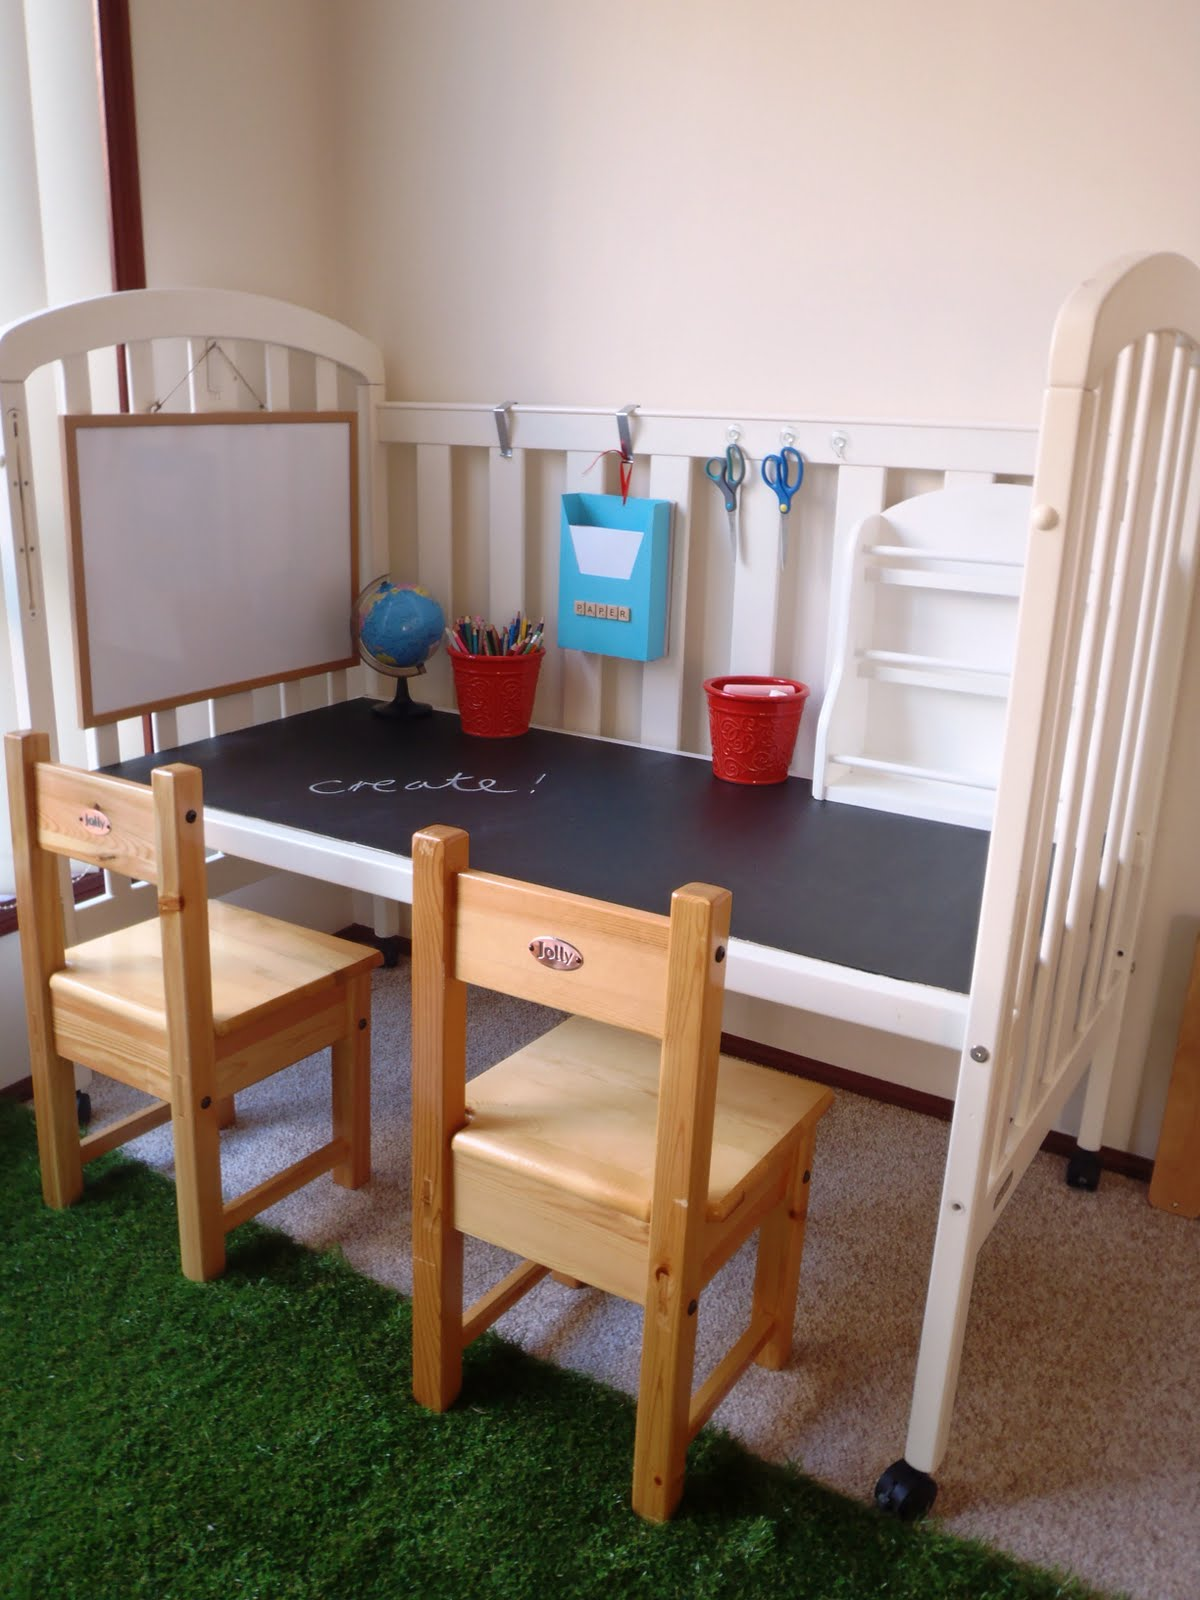 From crib to play table